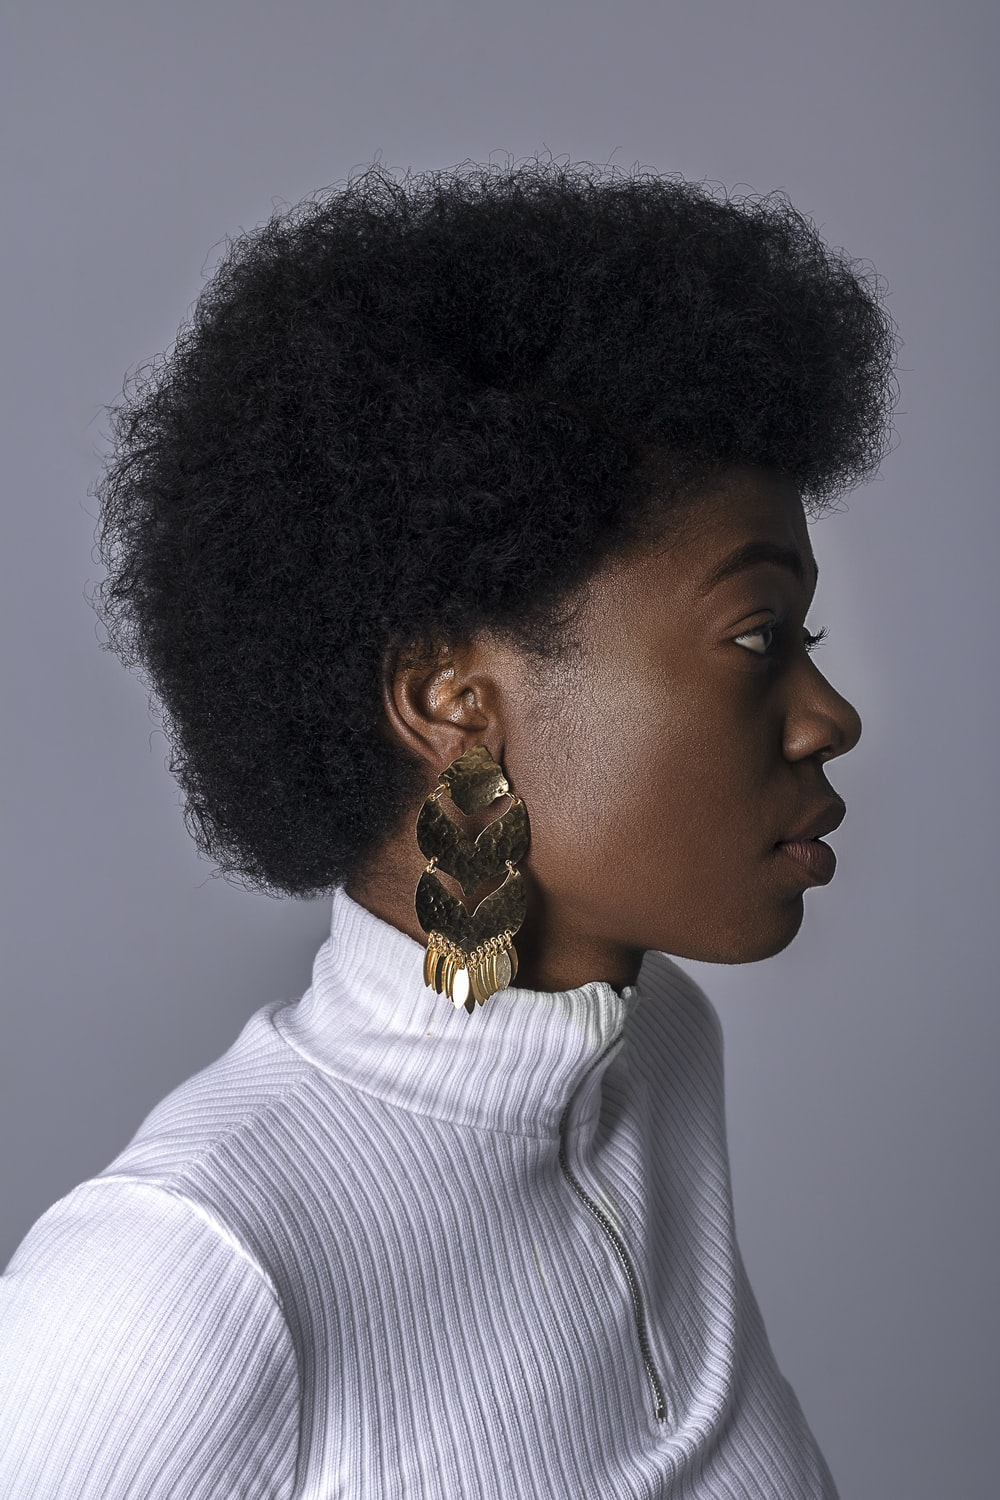 woman wearing white turtleneck top and gold-colored earring